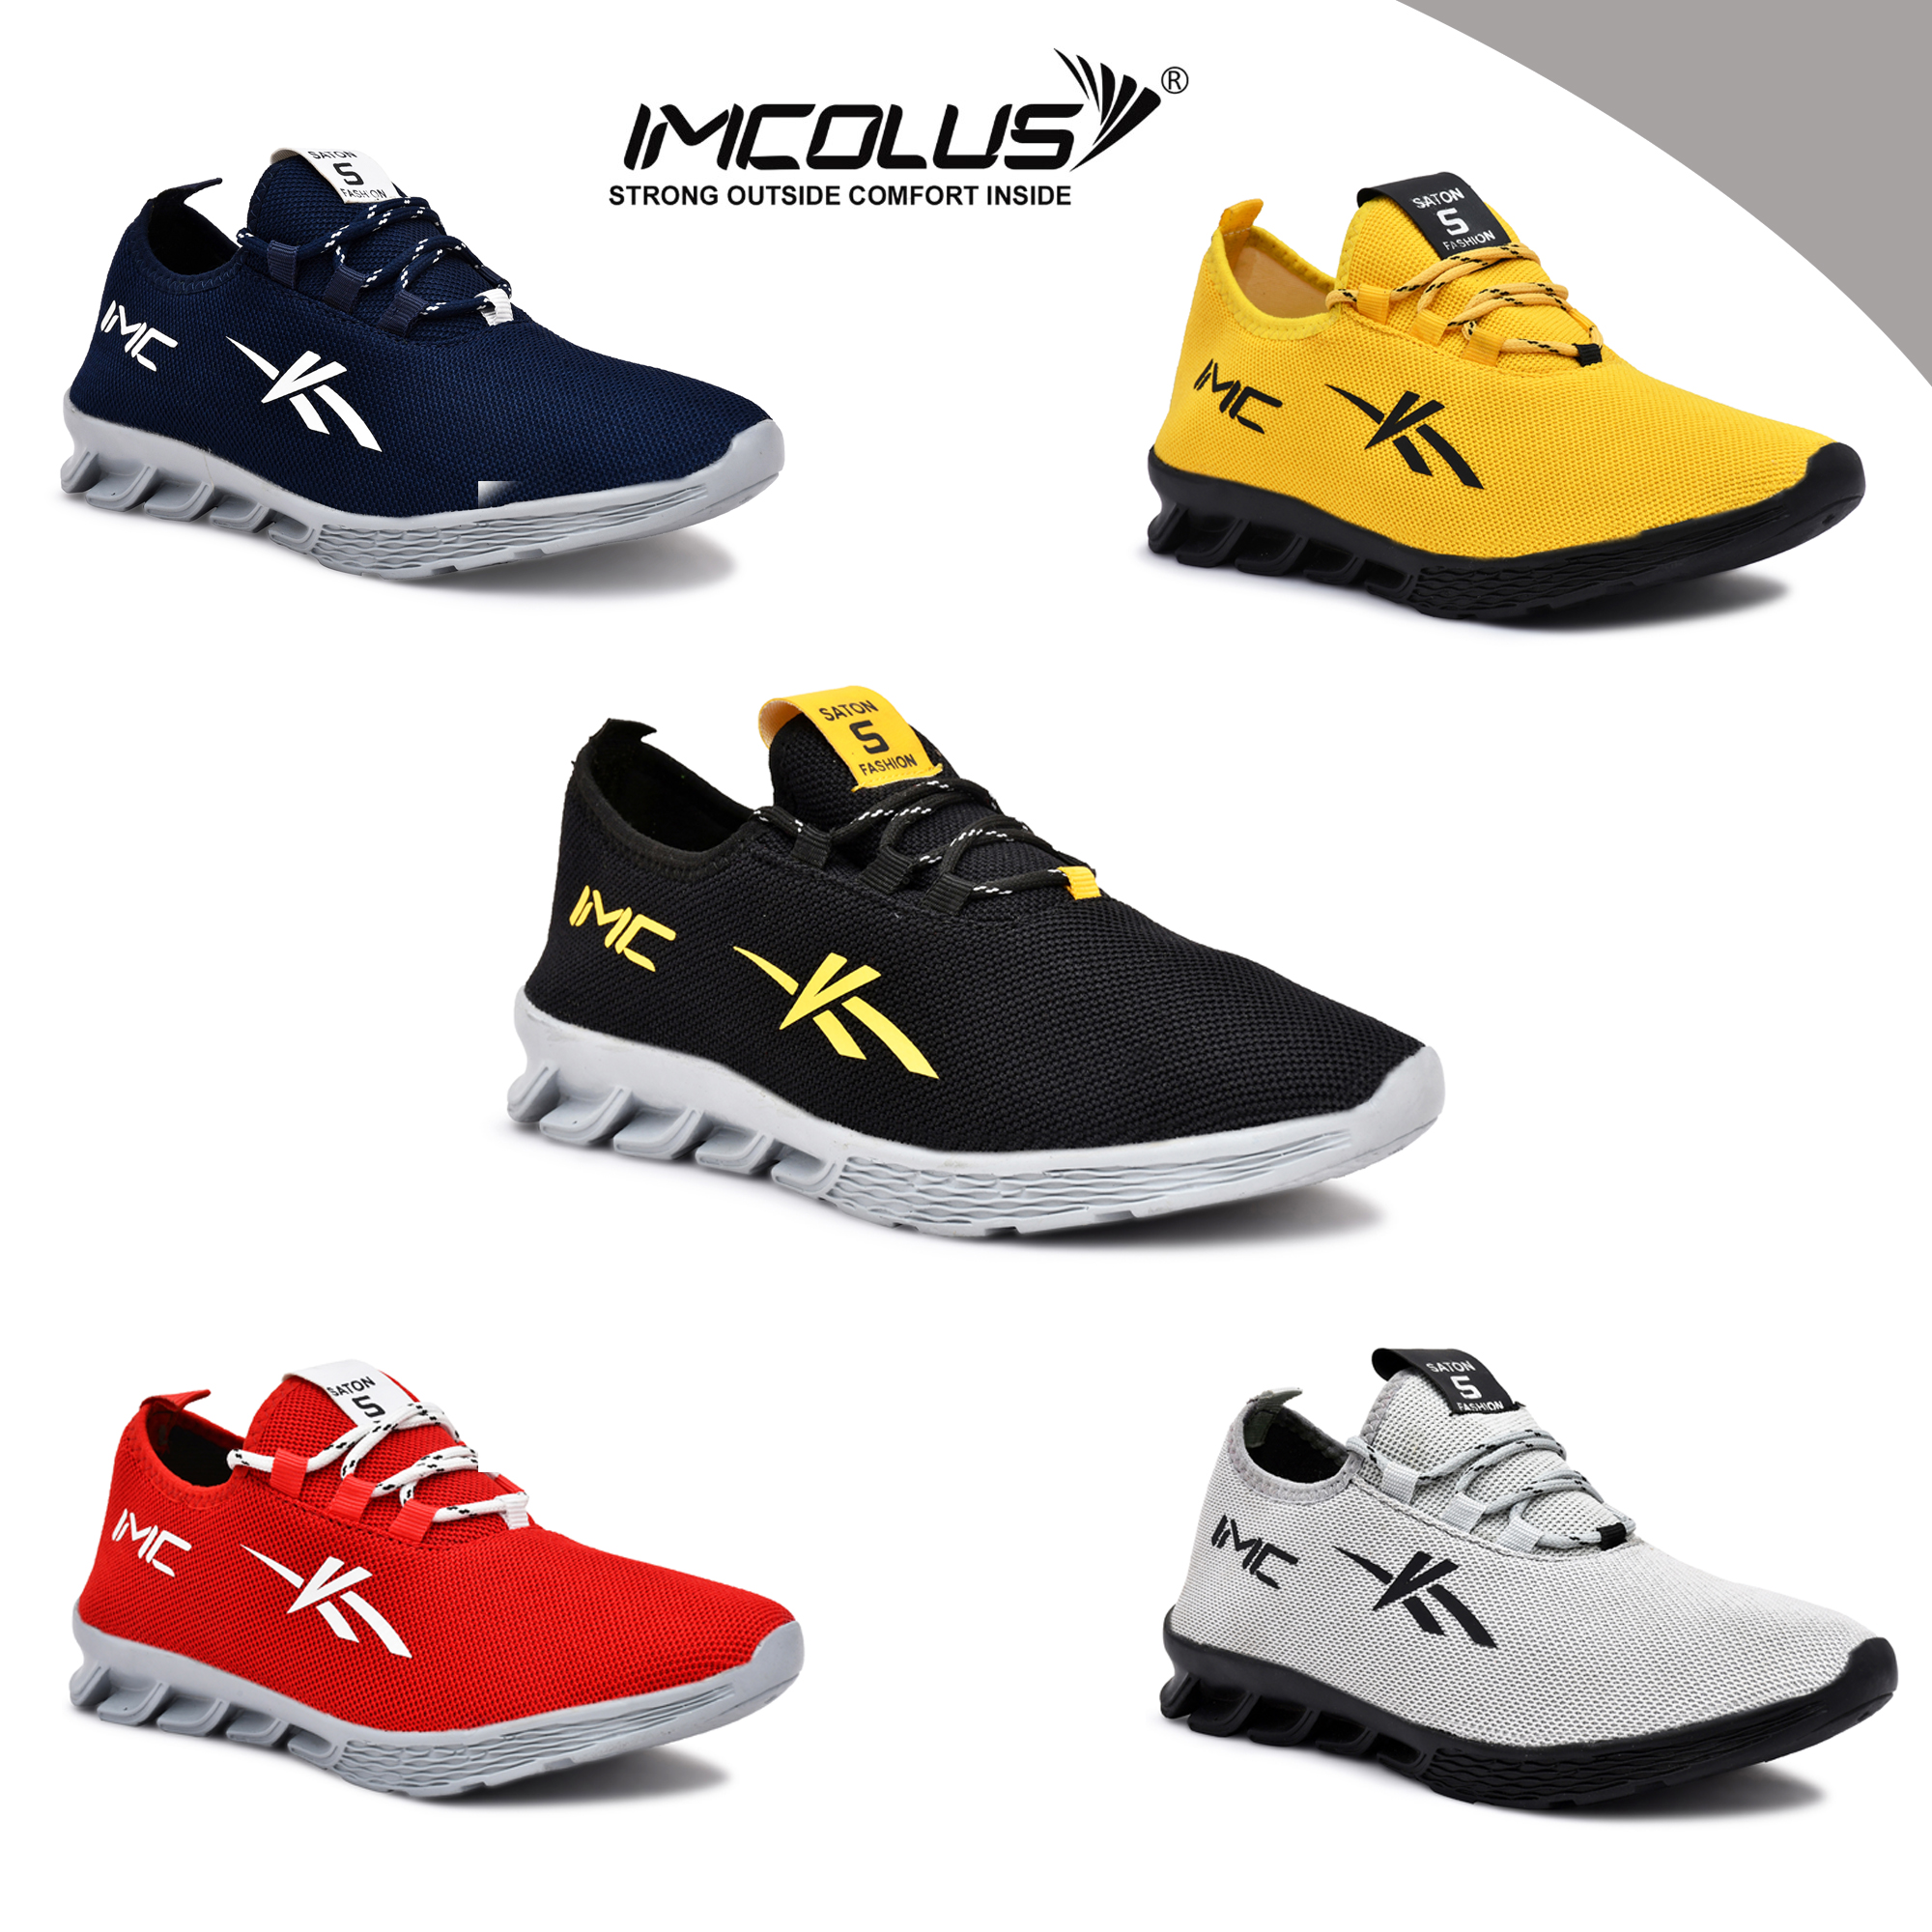 IMC683A.1000_GRY FANCY & COMFORTABLE FLEXIBLE SPORT SHOE FOR MEN IMC683A.1000_GRY (GREY, 7TO10, 4 PAIRS)